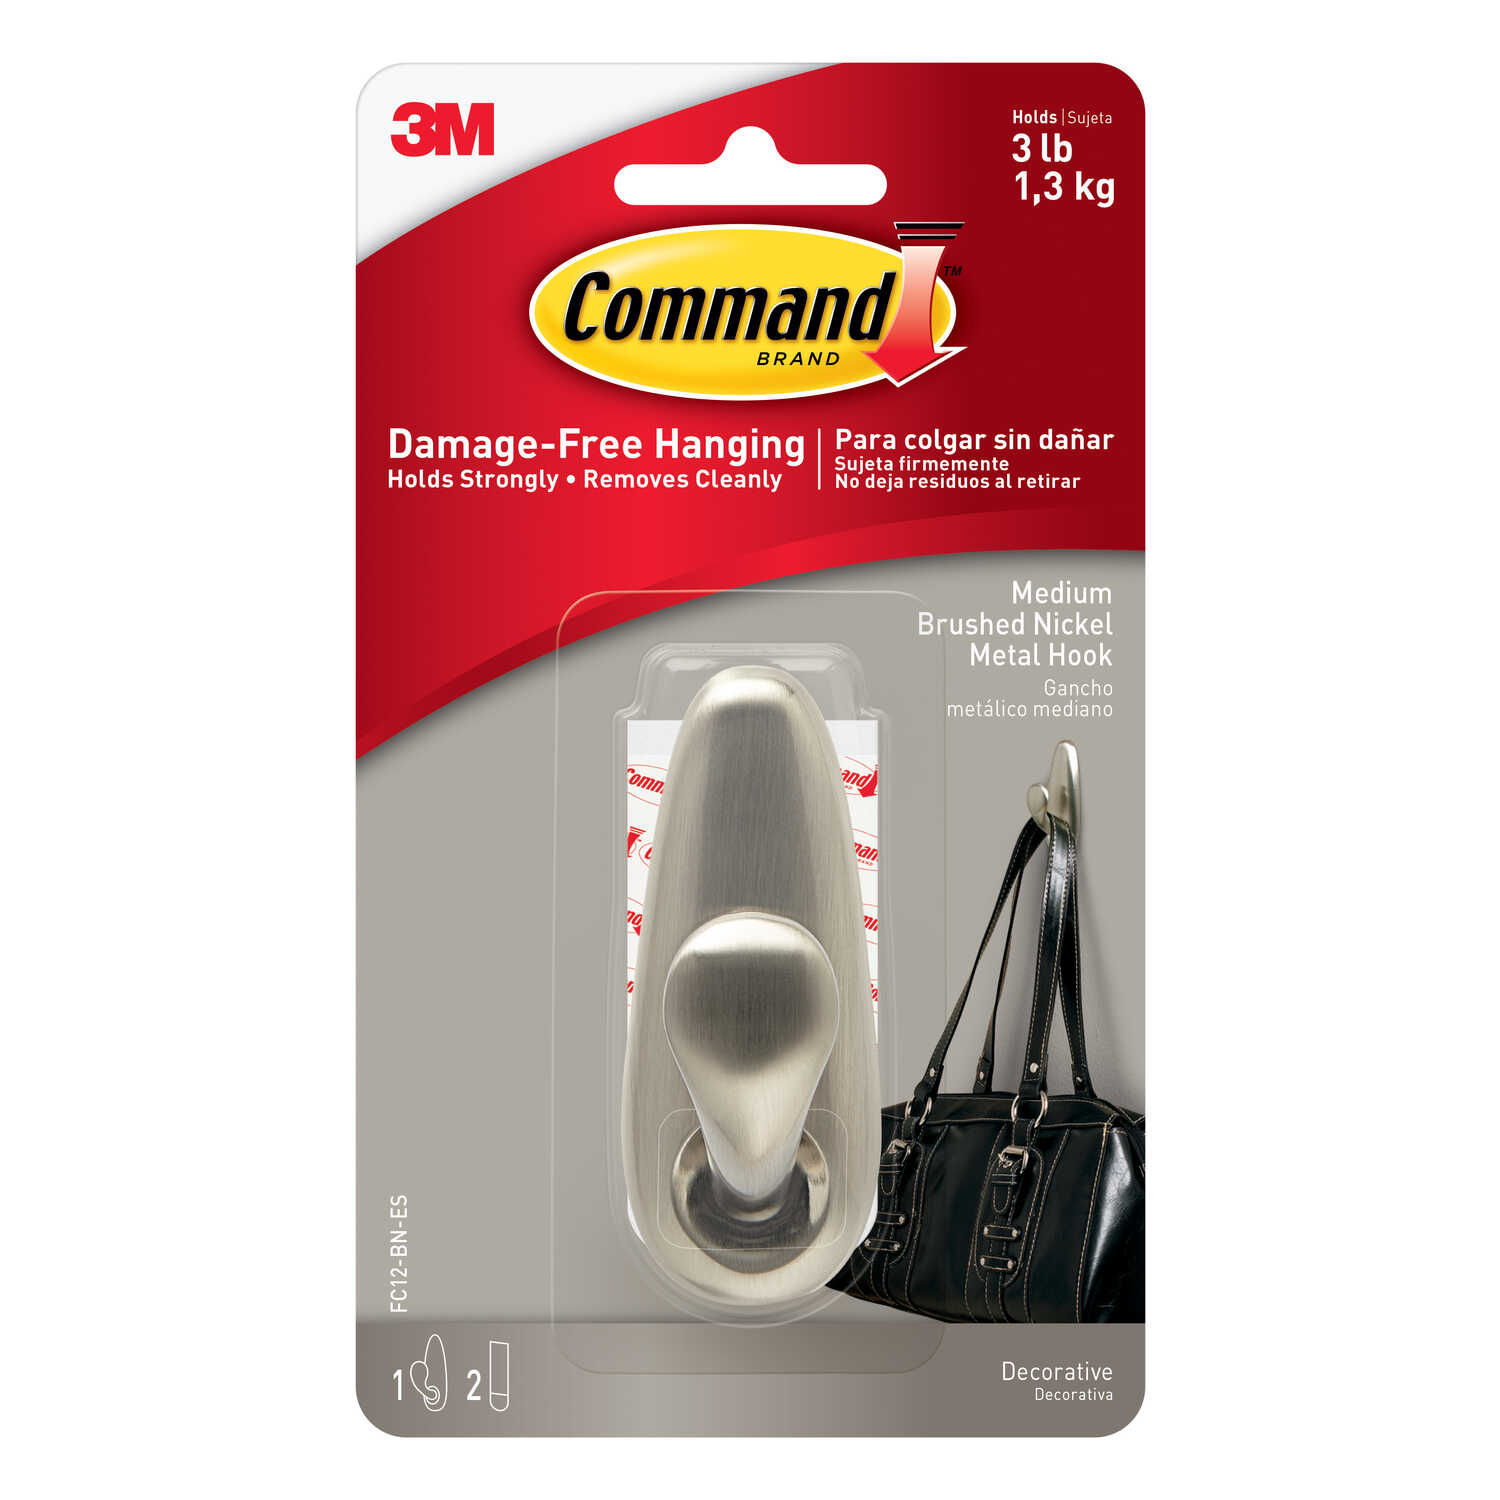 3M  Command  3-1/4 in. L Metal  Medium  Forever Classic  Coat/Hat Hook  3 lb. capacity 1 pk Brushed